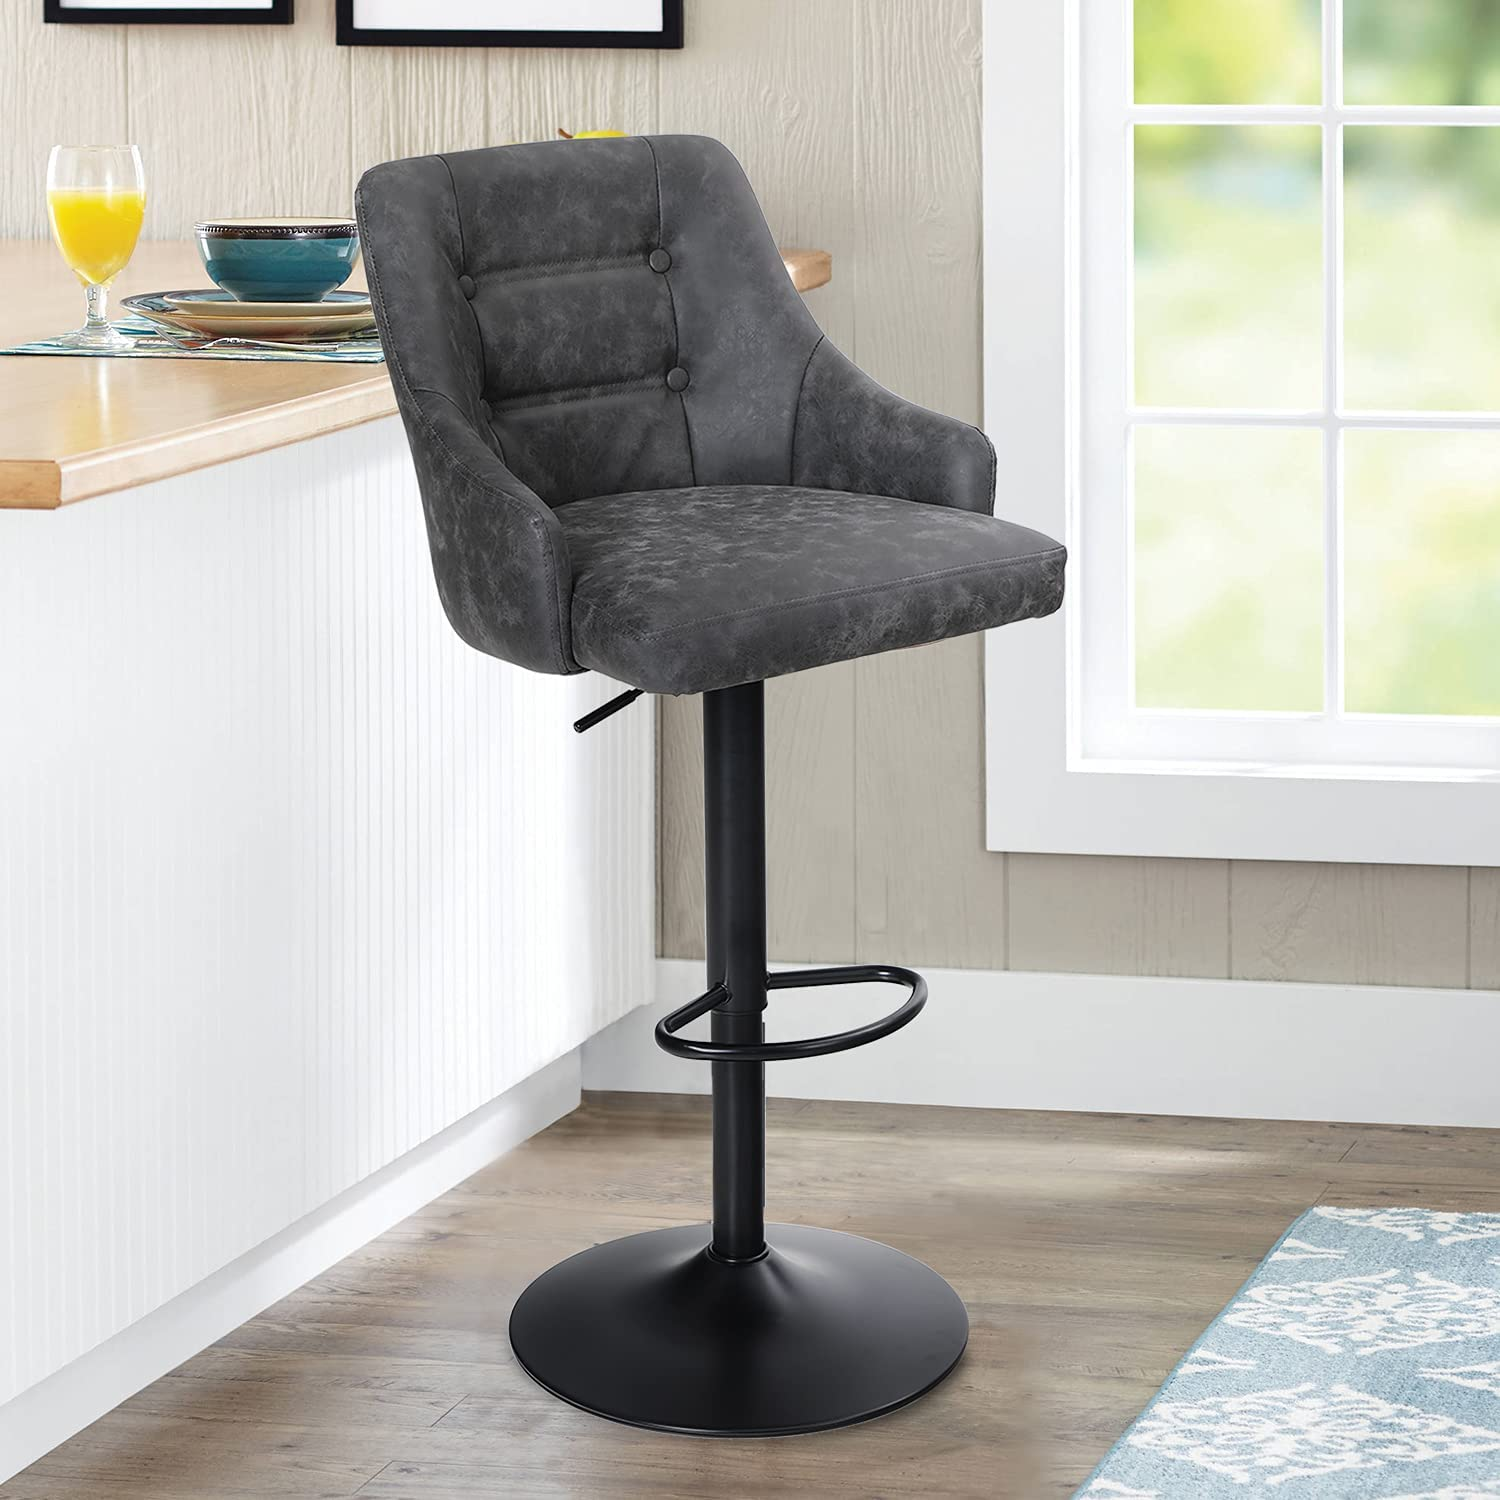 Maison Adjustable Swivel Bar Stool with Back Popular overseas Counter High order for Kitchen